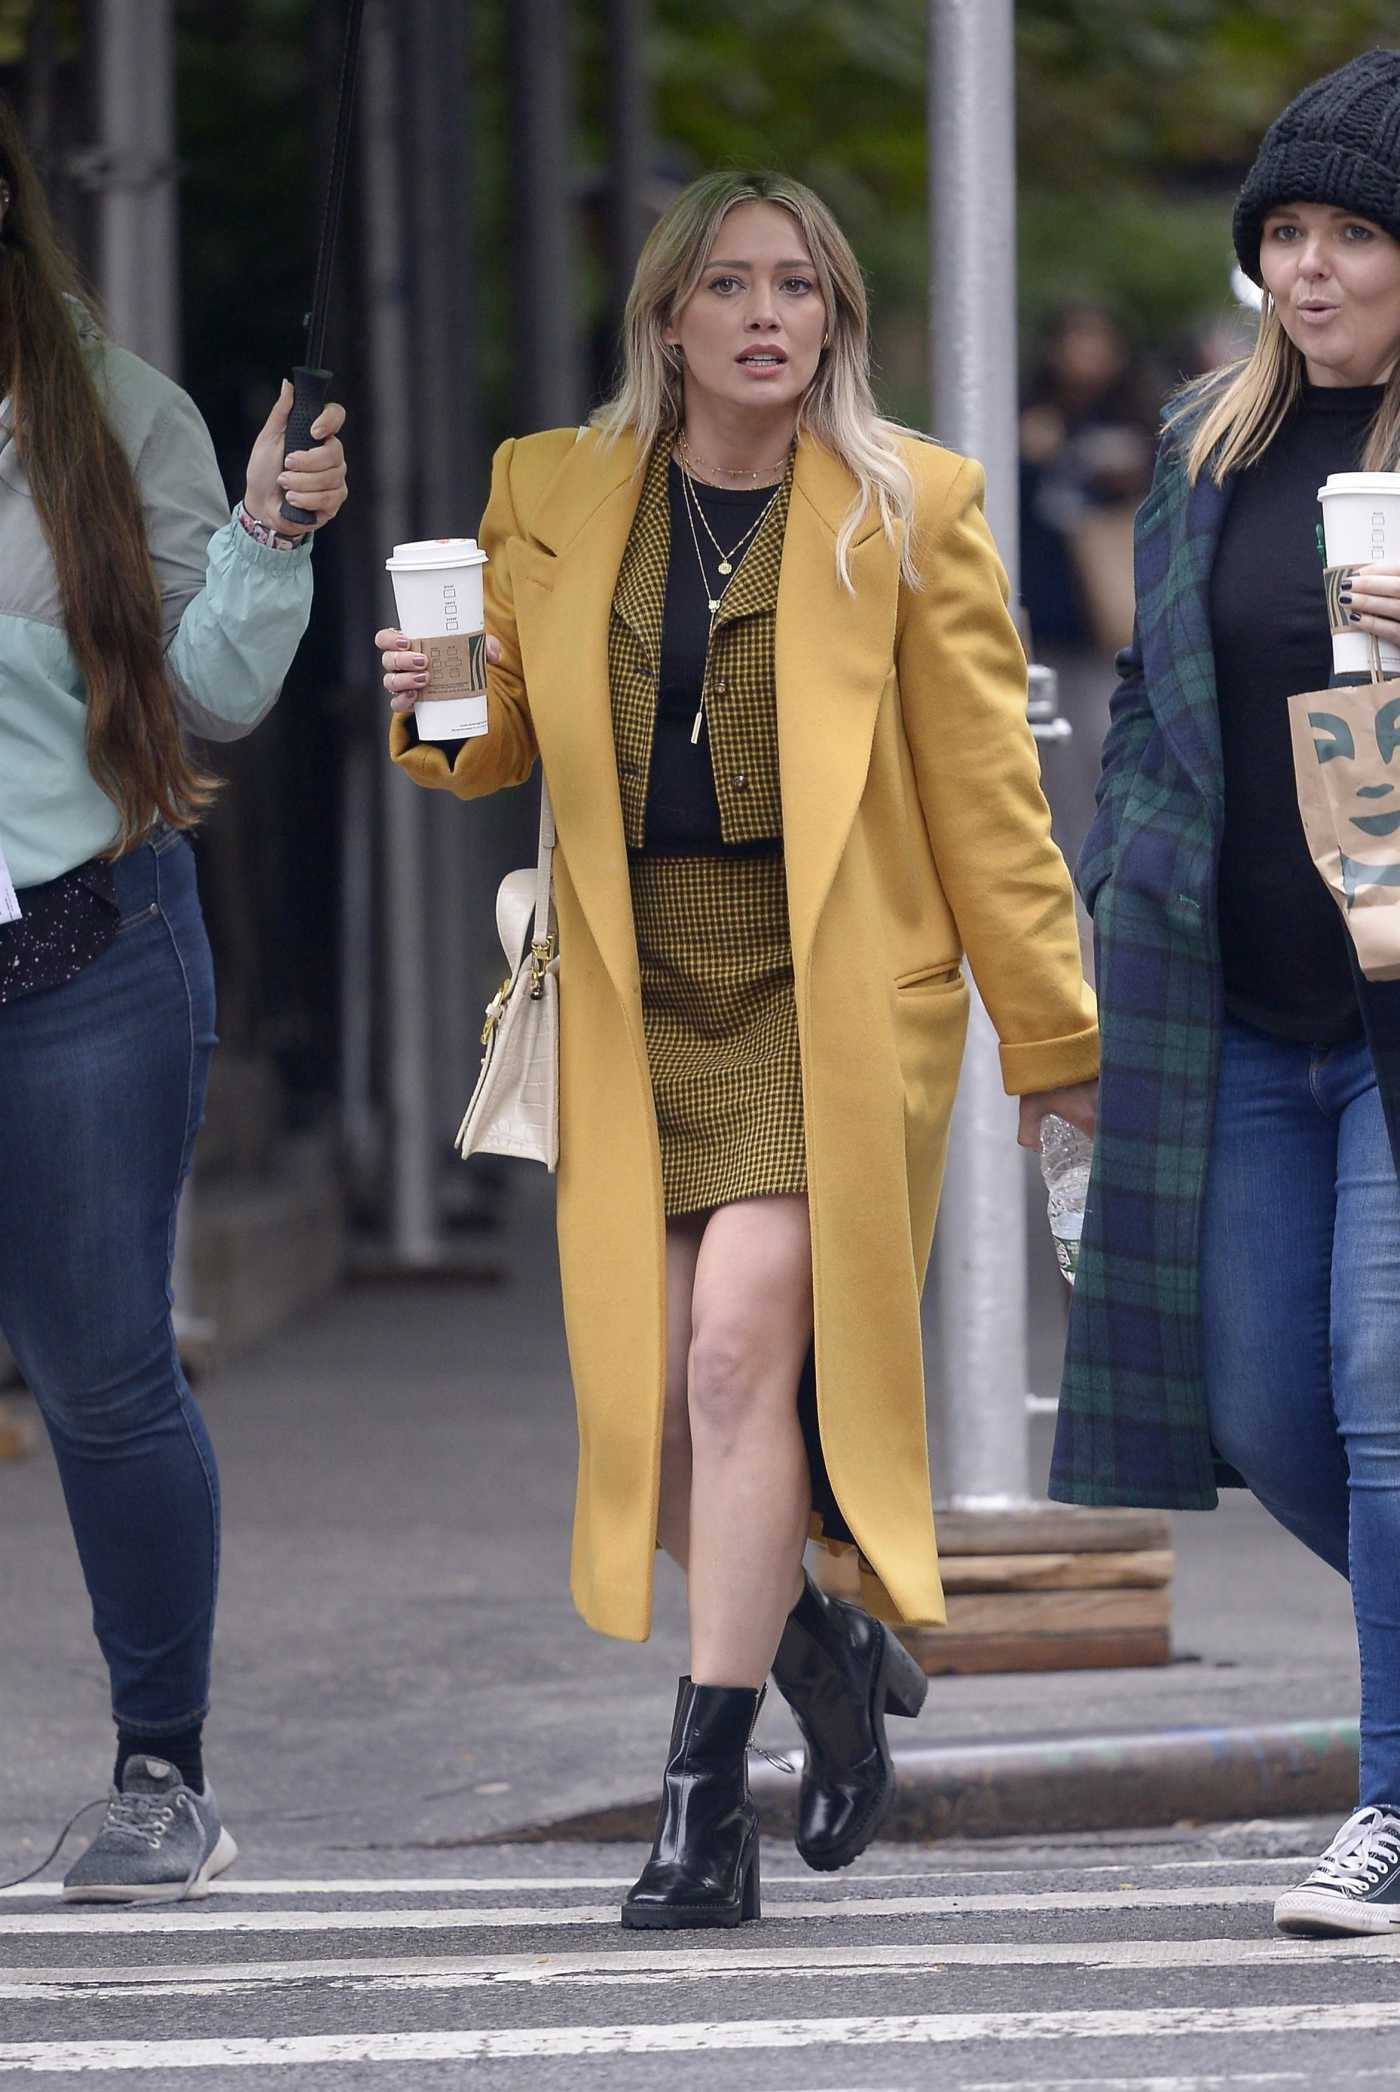 Hilary Duff in a Yellow Coat on the Set of Lizzie McGuire in NY 10/29/2019